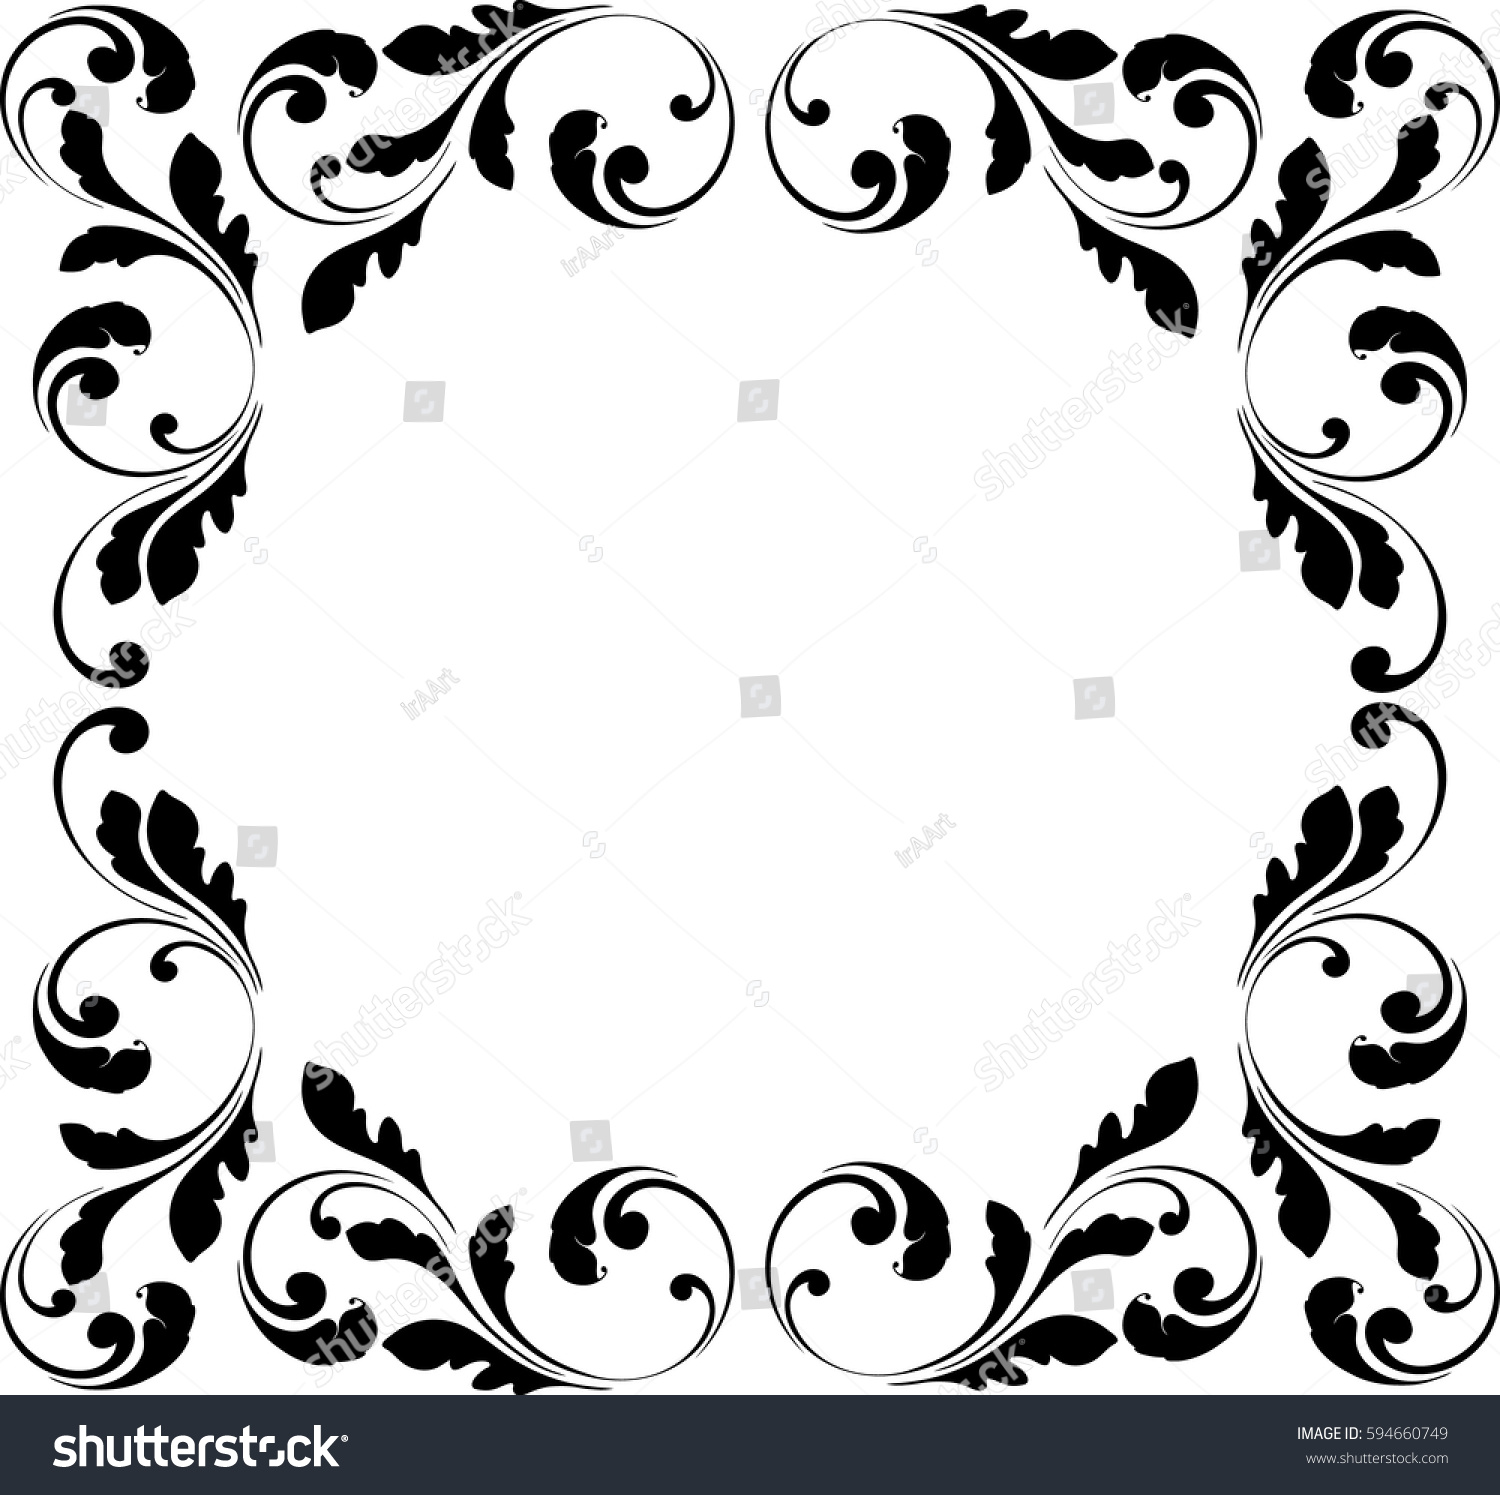 Decorative Black Flower Border Stock Image: Decorative Frame Floral Swirls Flowers Border Stock Vector